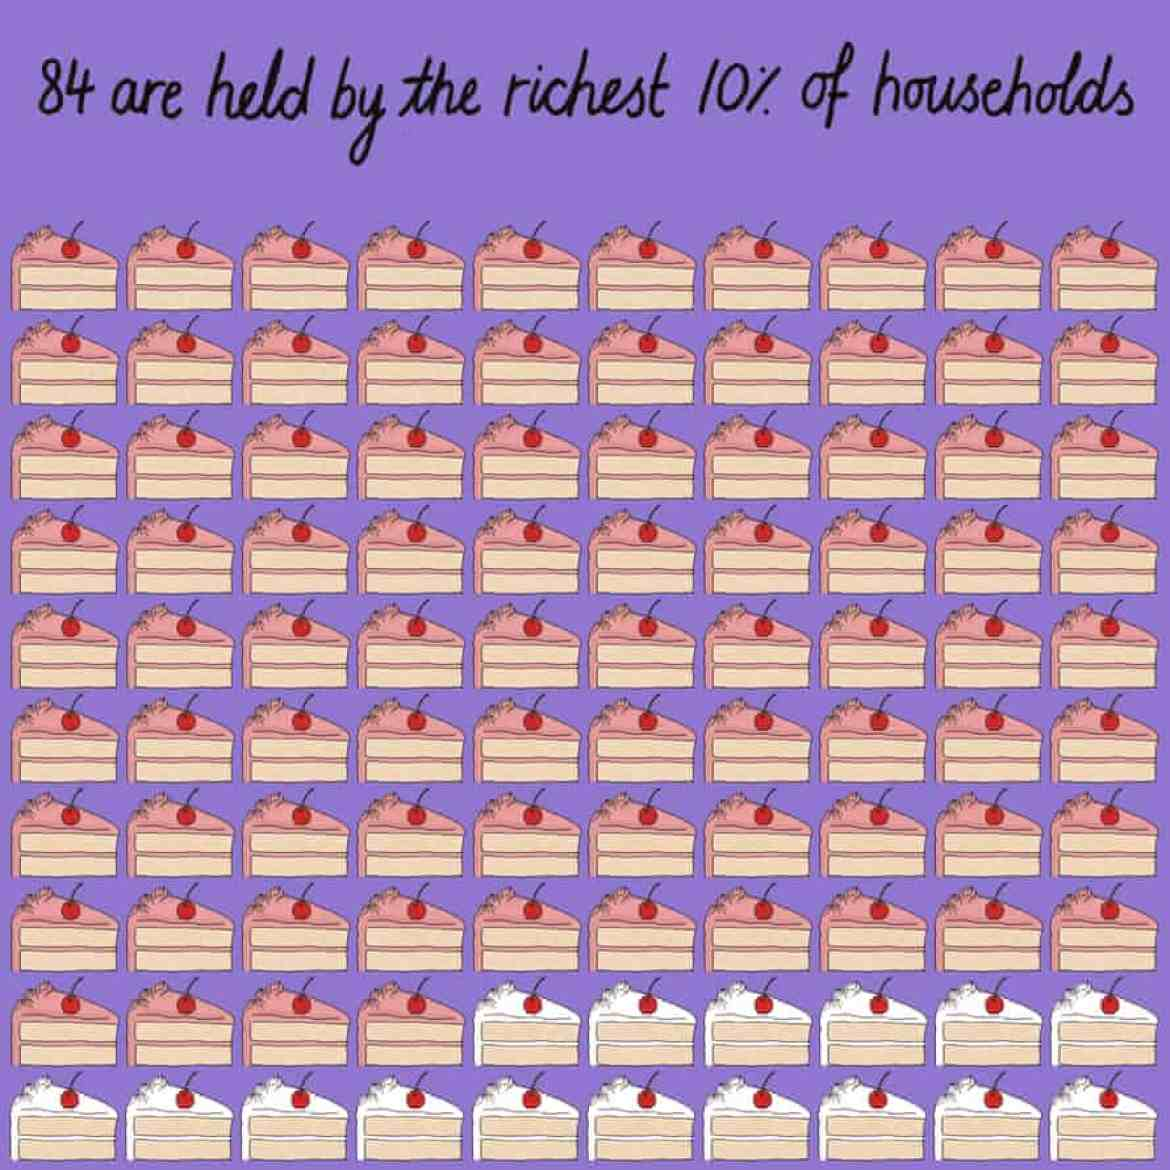 84% of the US stock market is held by the richest 10% of households.